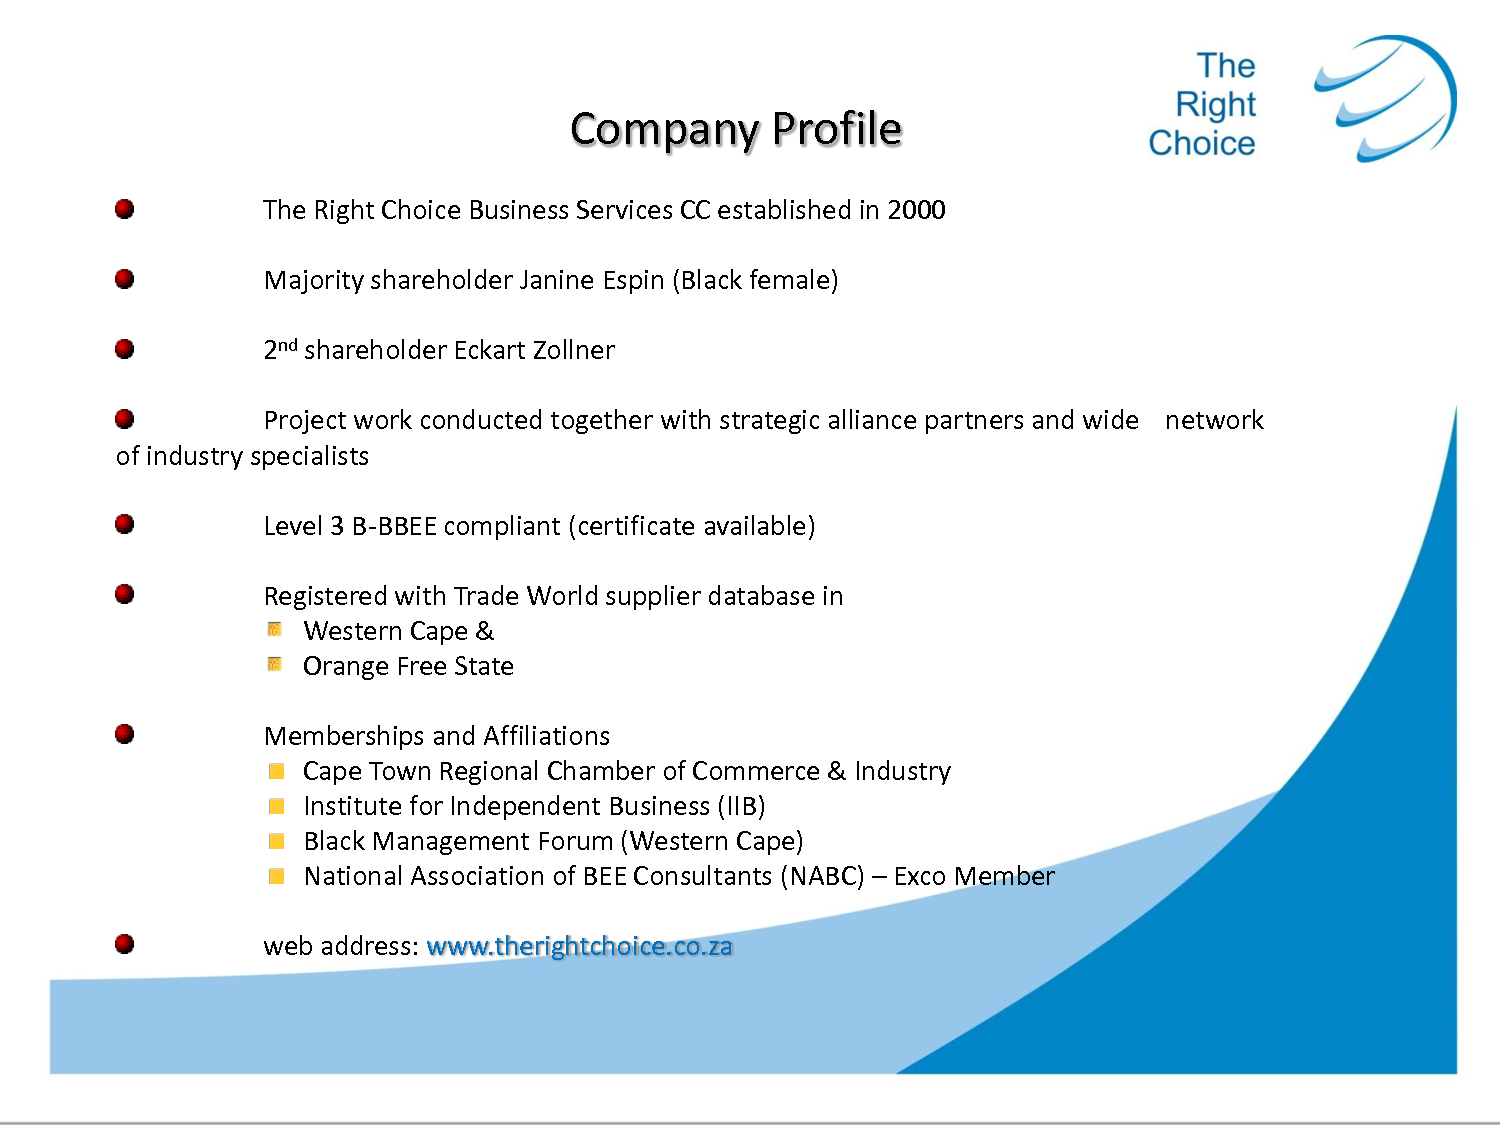 Media Company Profile Templateltg Guvmfvu  Business Intended For How To Write Business Profile Template